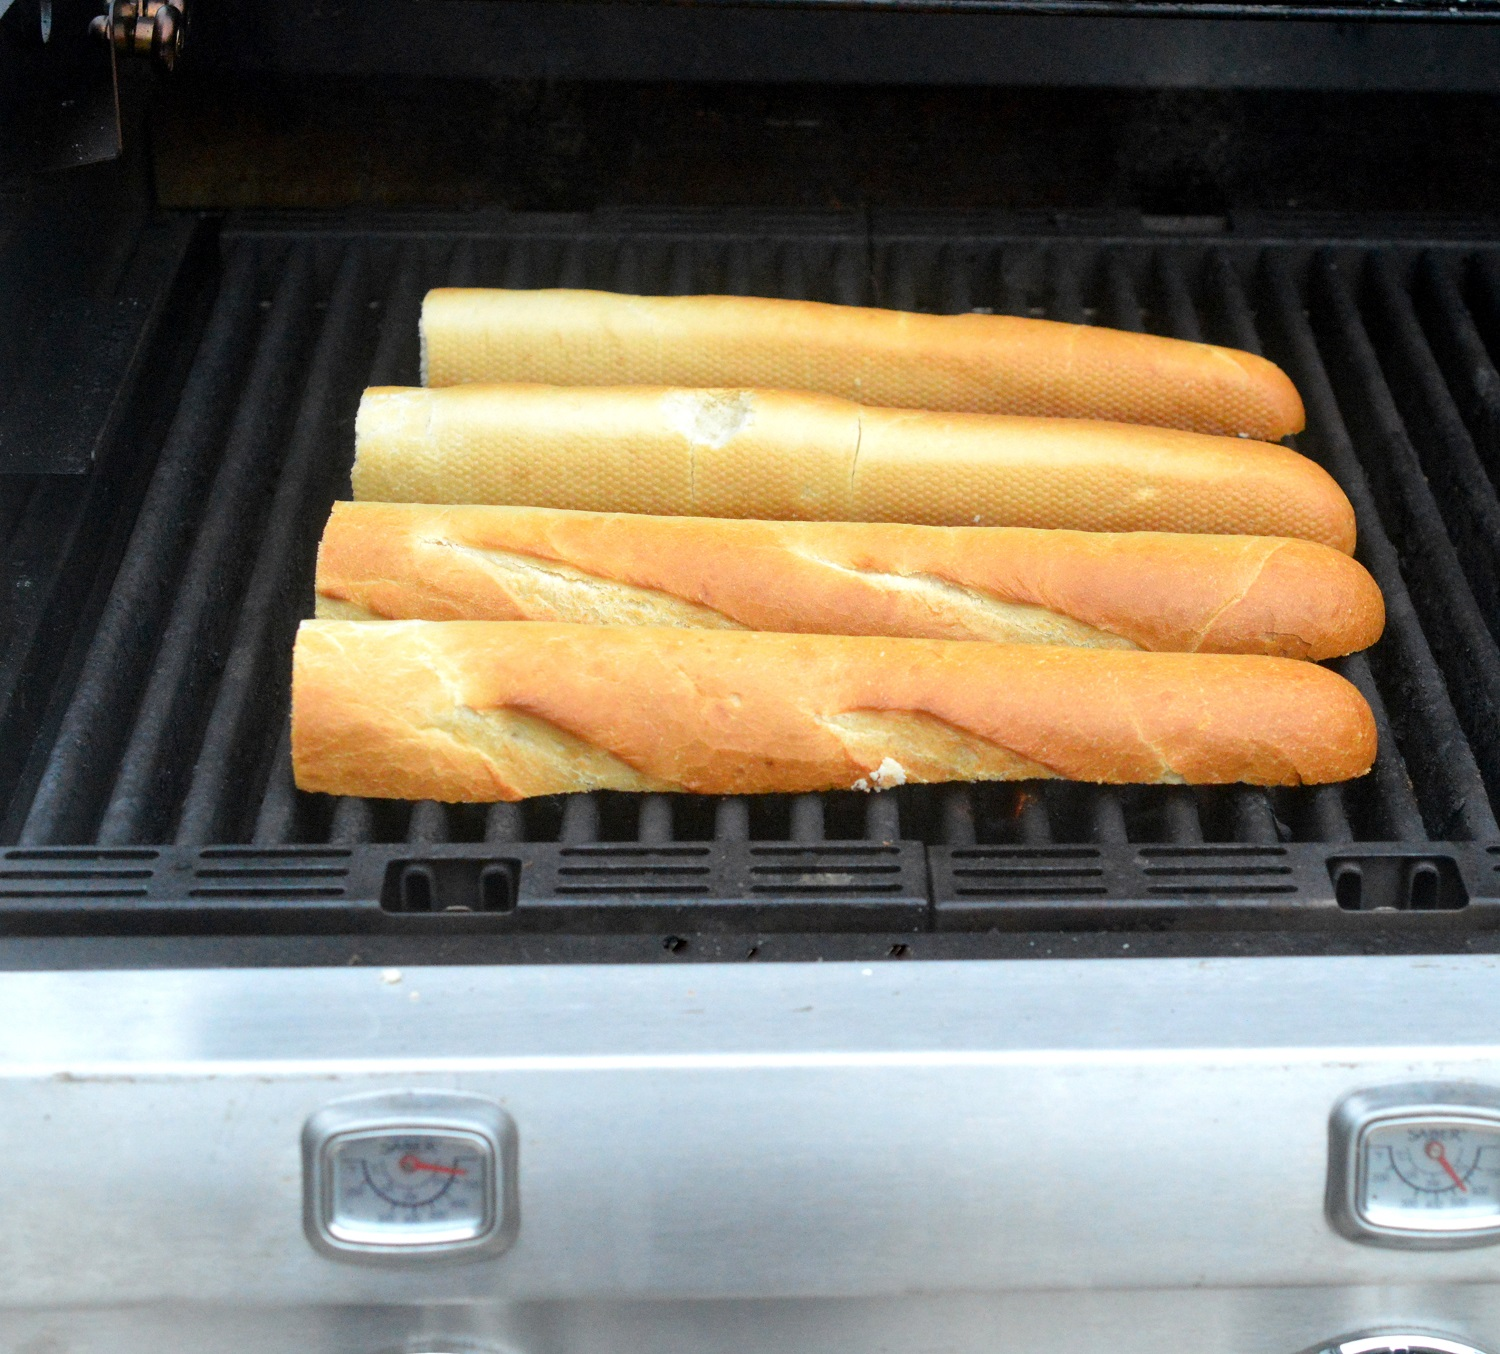 Grilling French bread